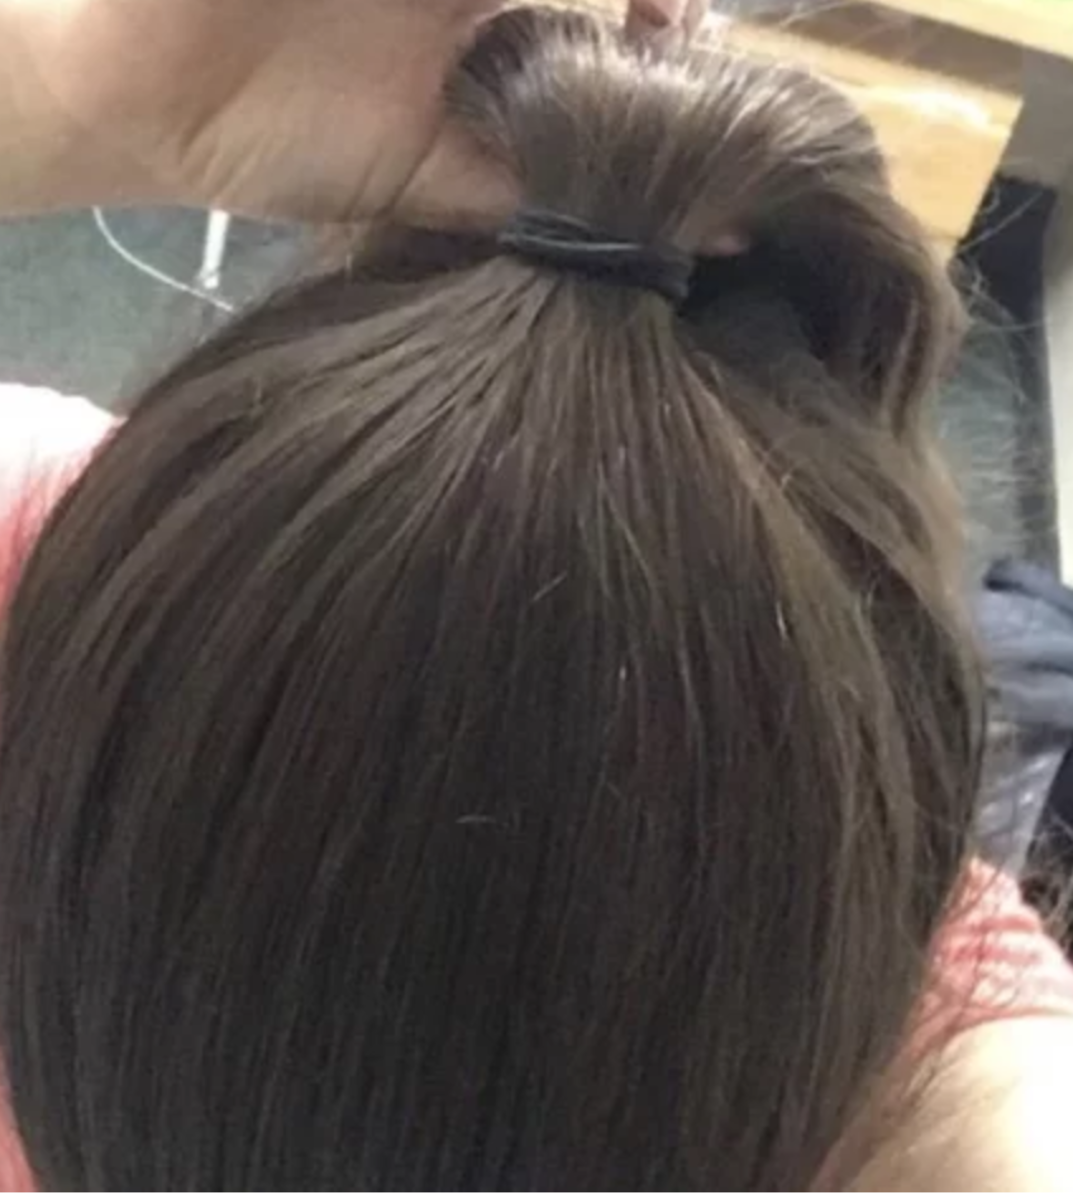 My hair now, 4 years after stopping Accutane. Nearly 100% of its density has recovered, and I am so delighted and blessed.